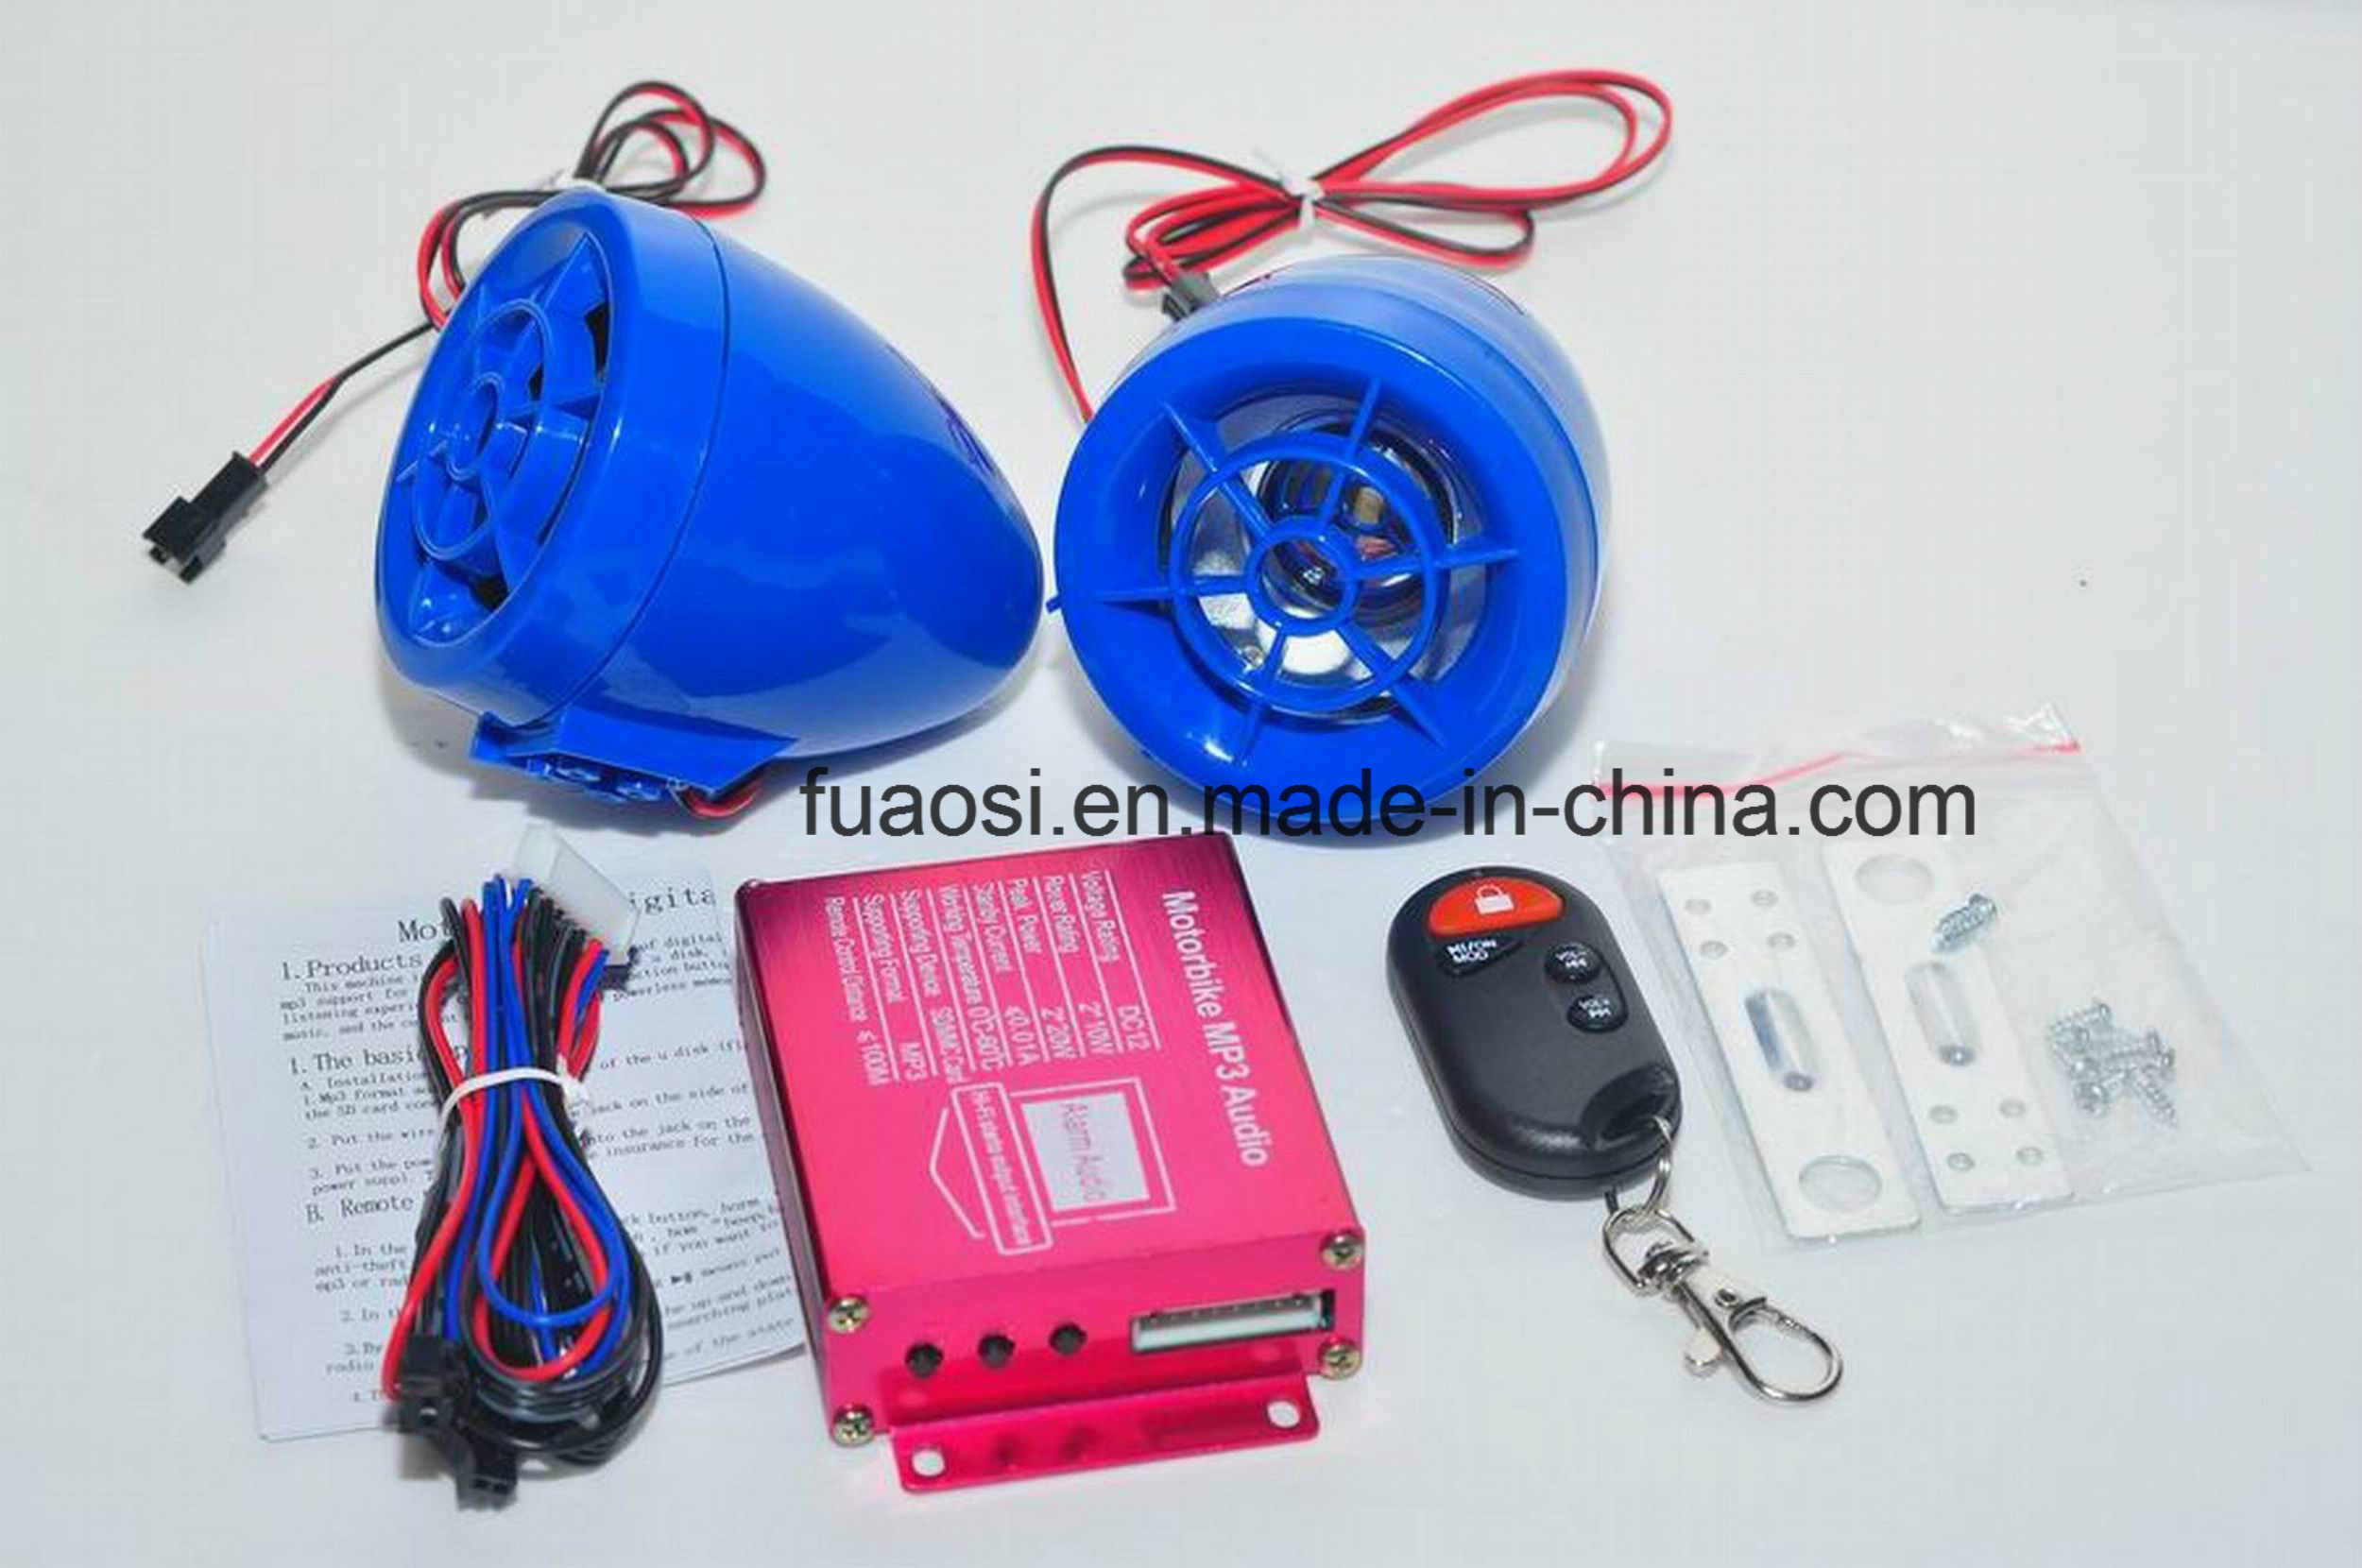 Wireless Motorcycle Alarm System MP3 Audio